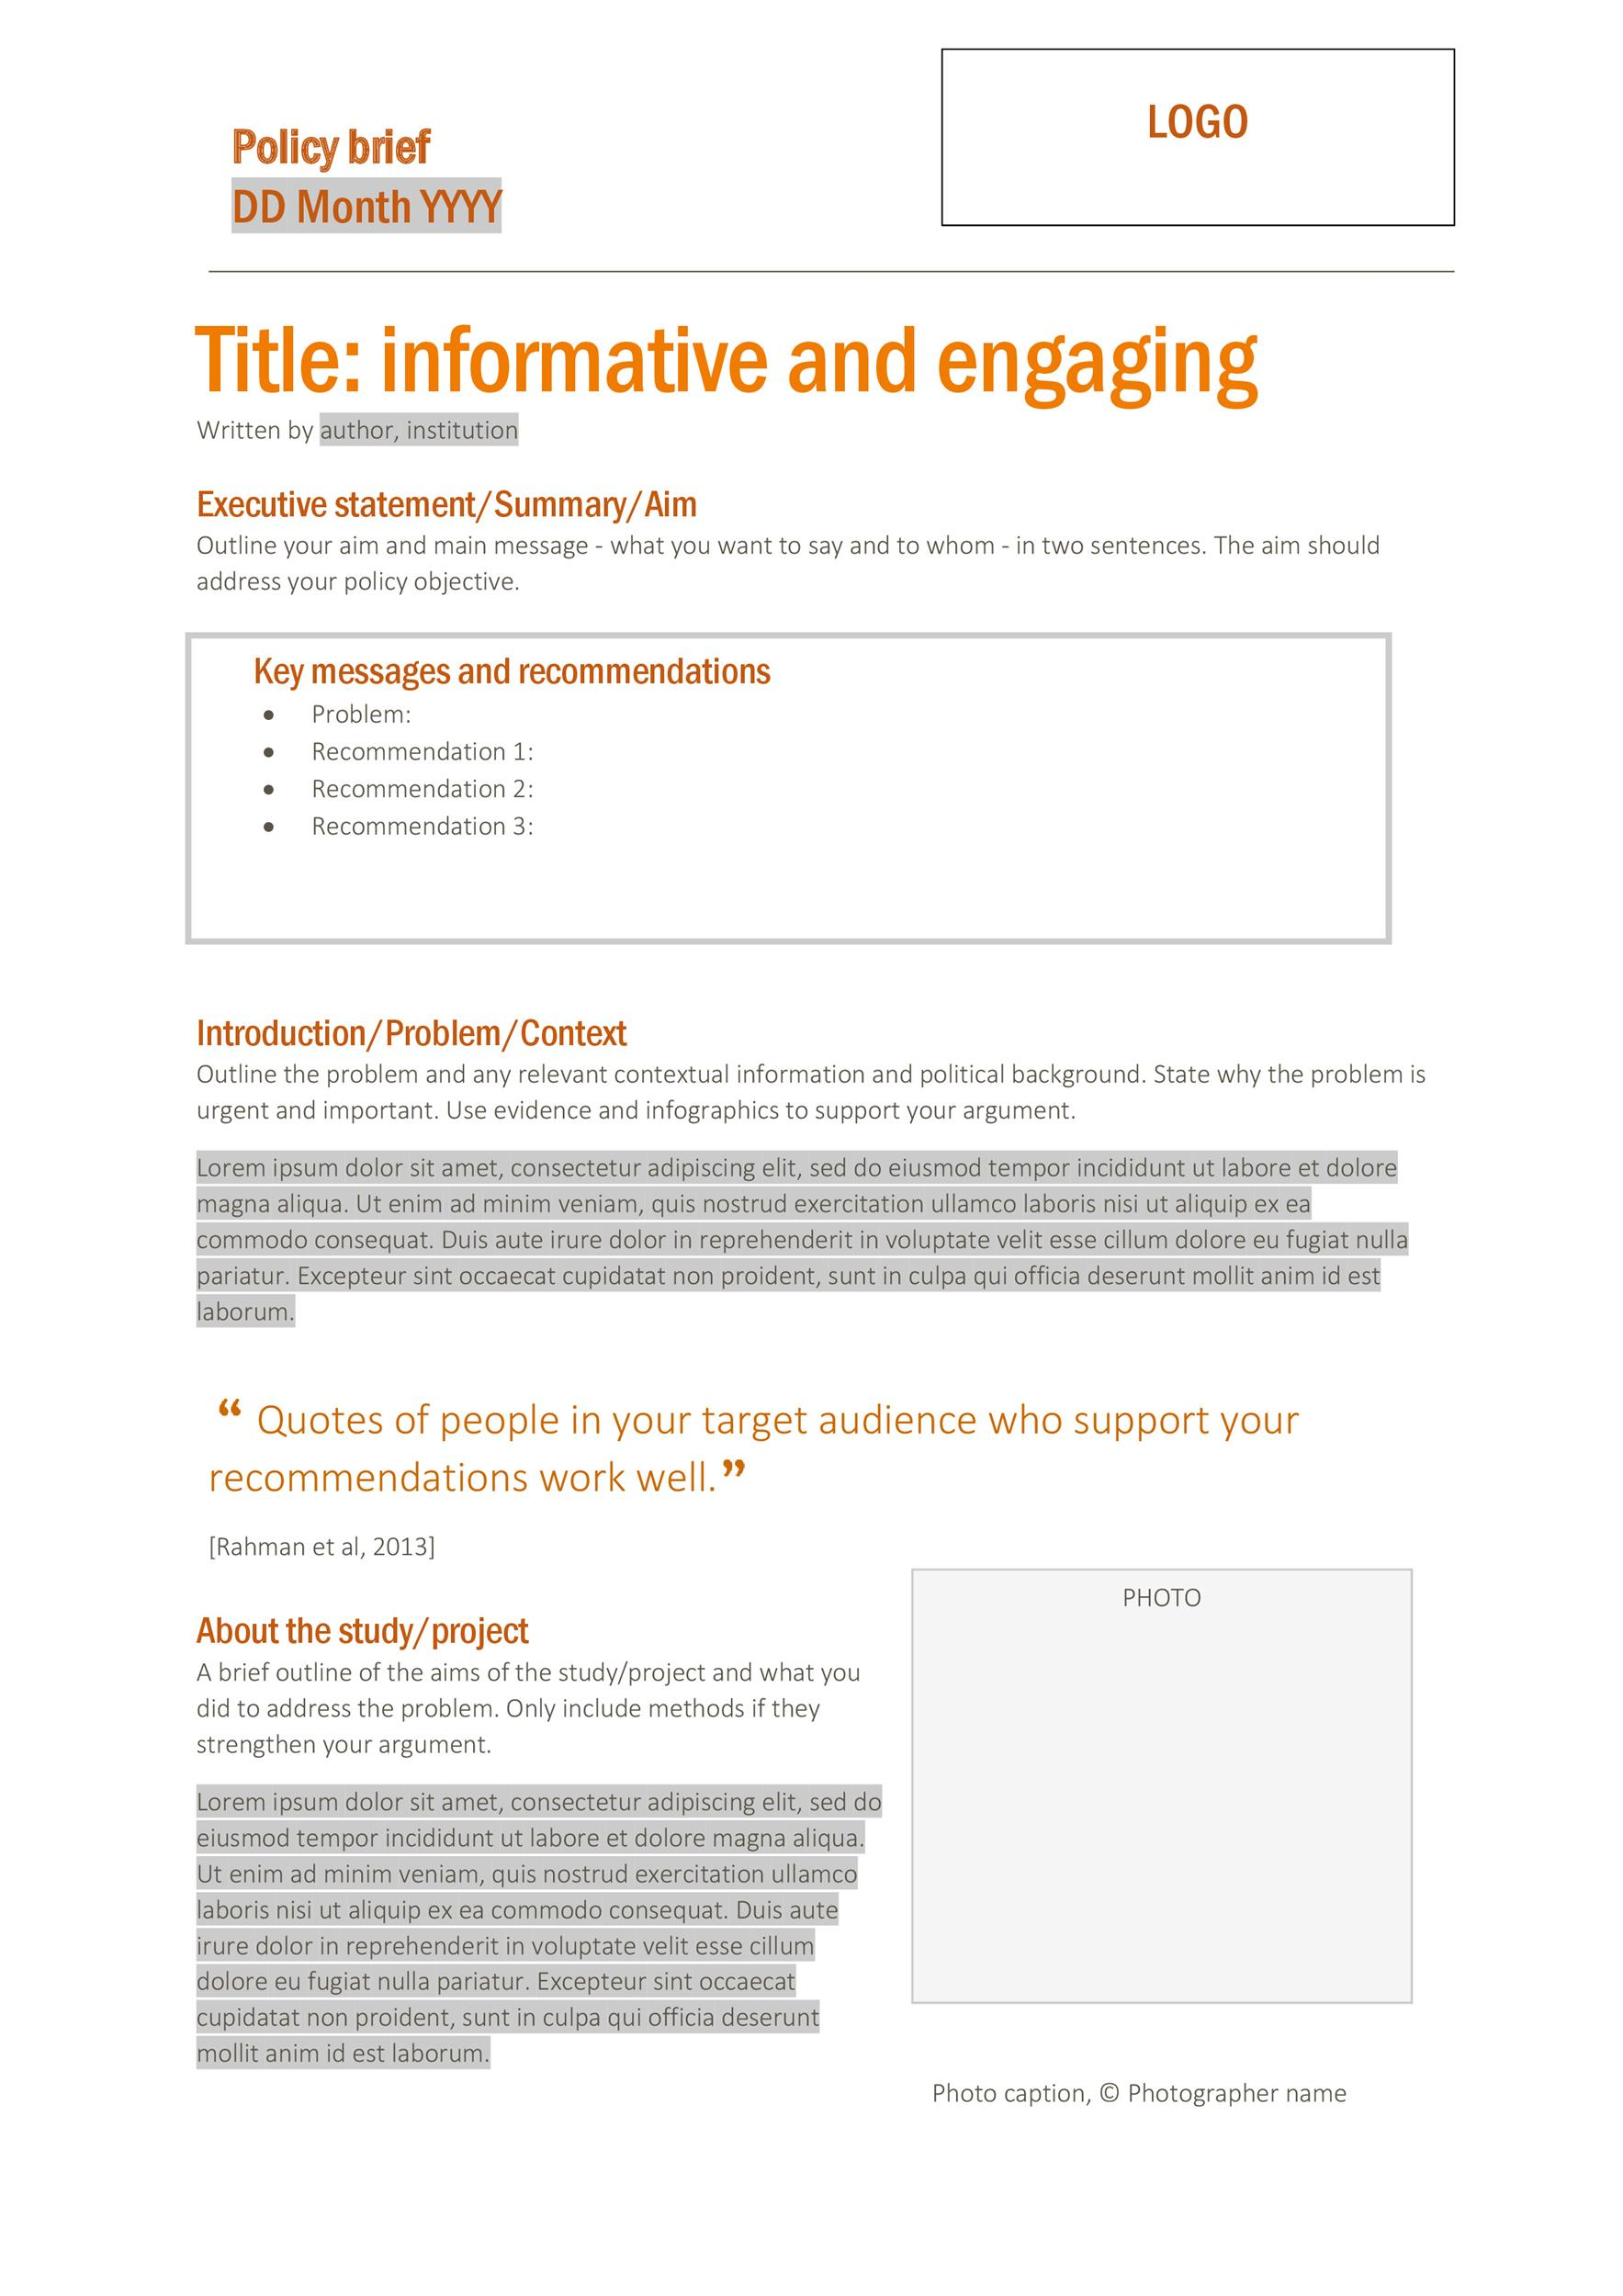 Free policy brief template 02